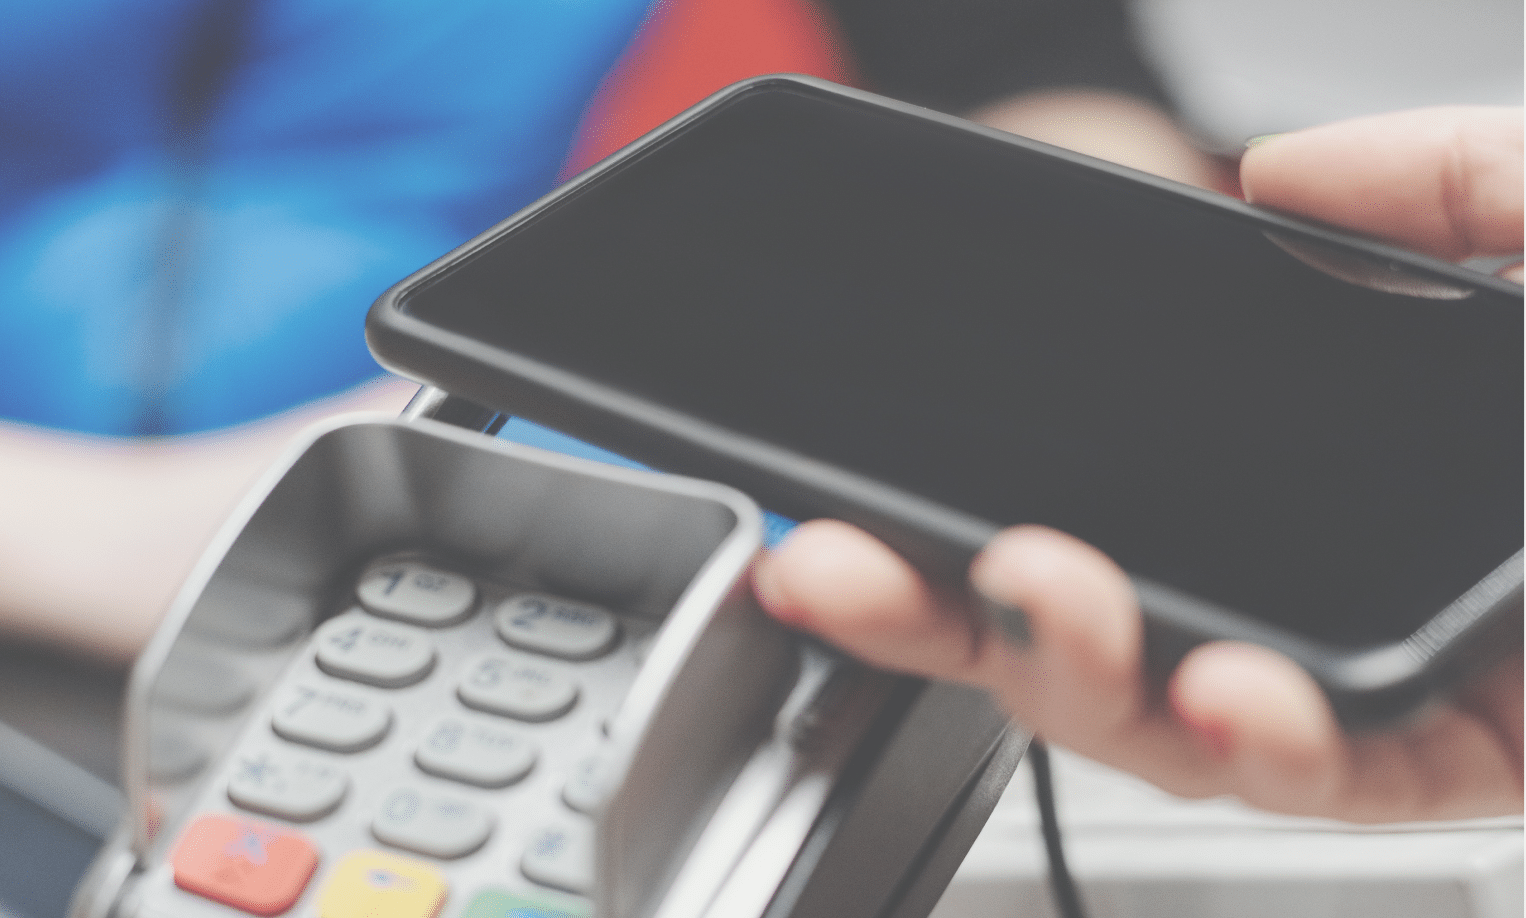 Payment with mobile image